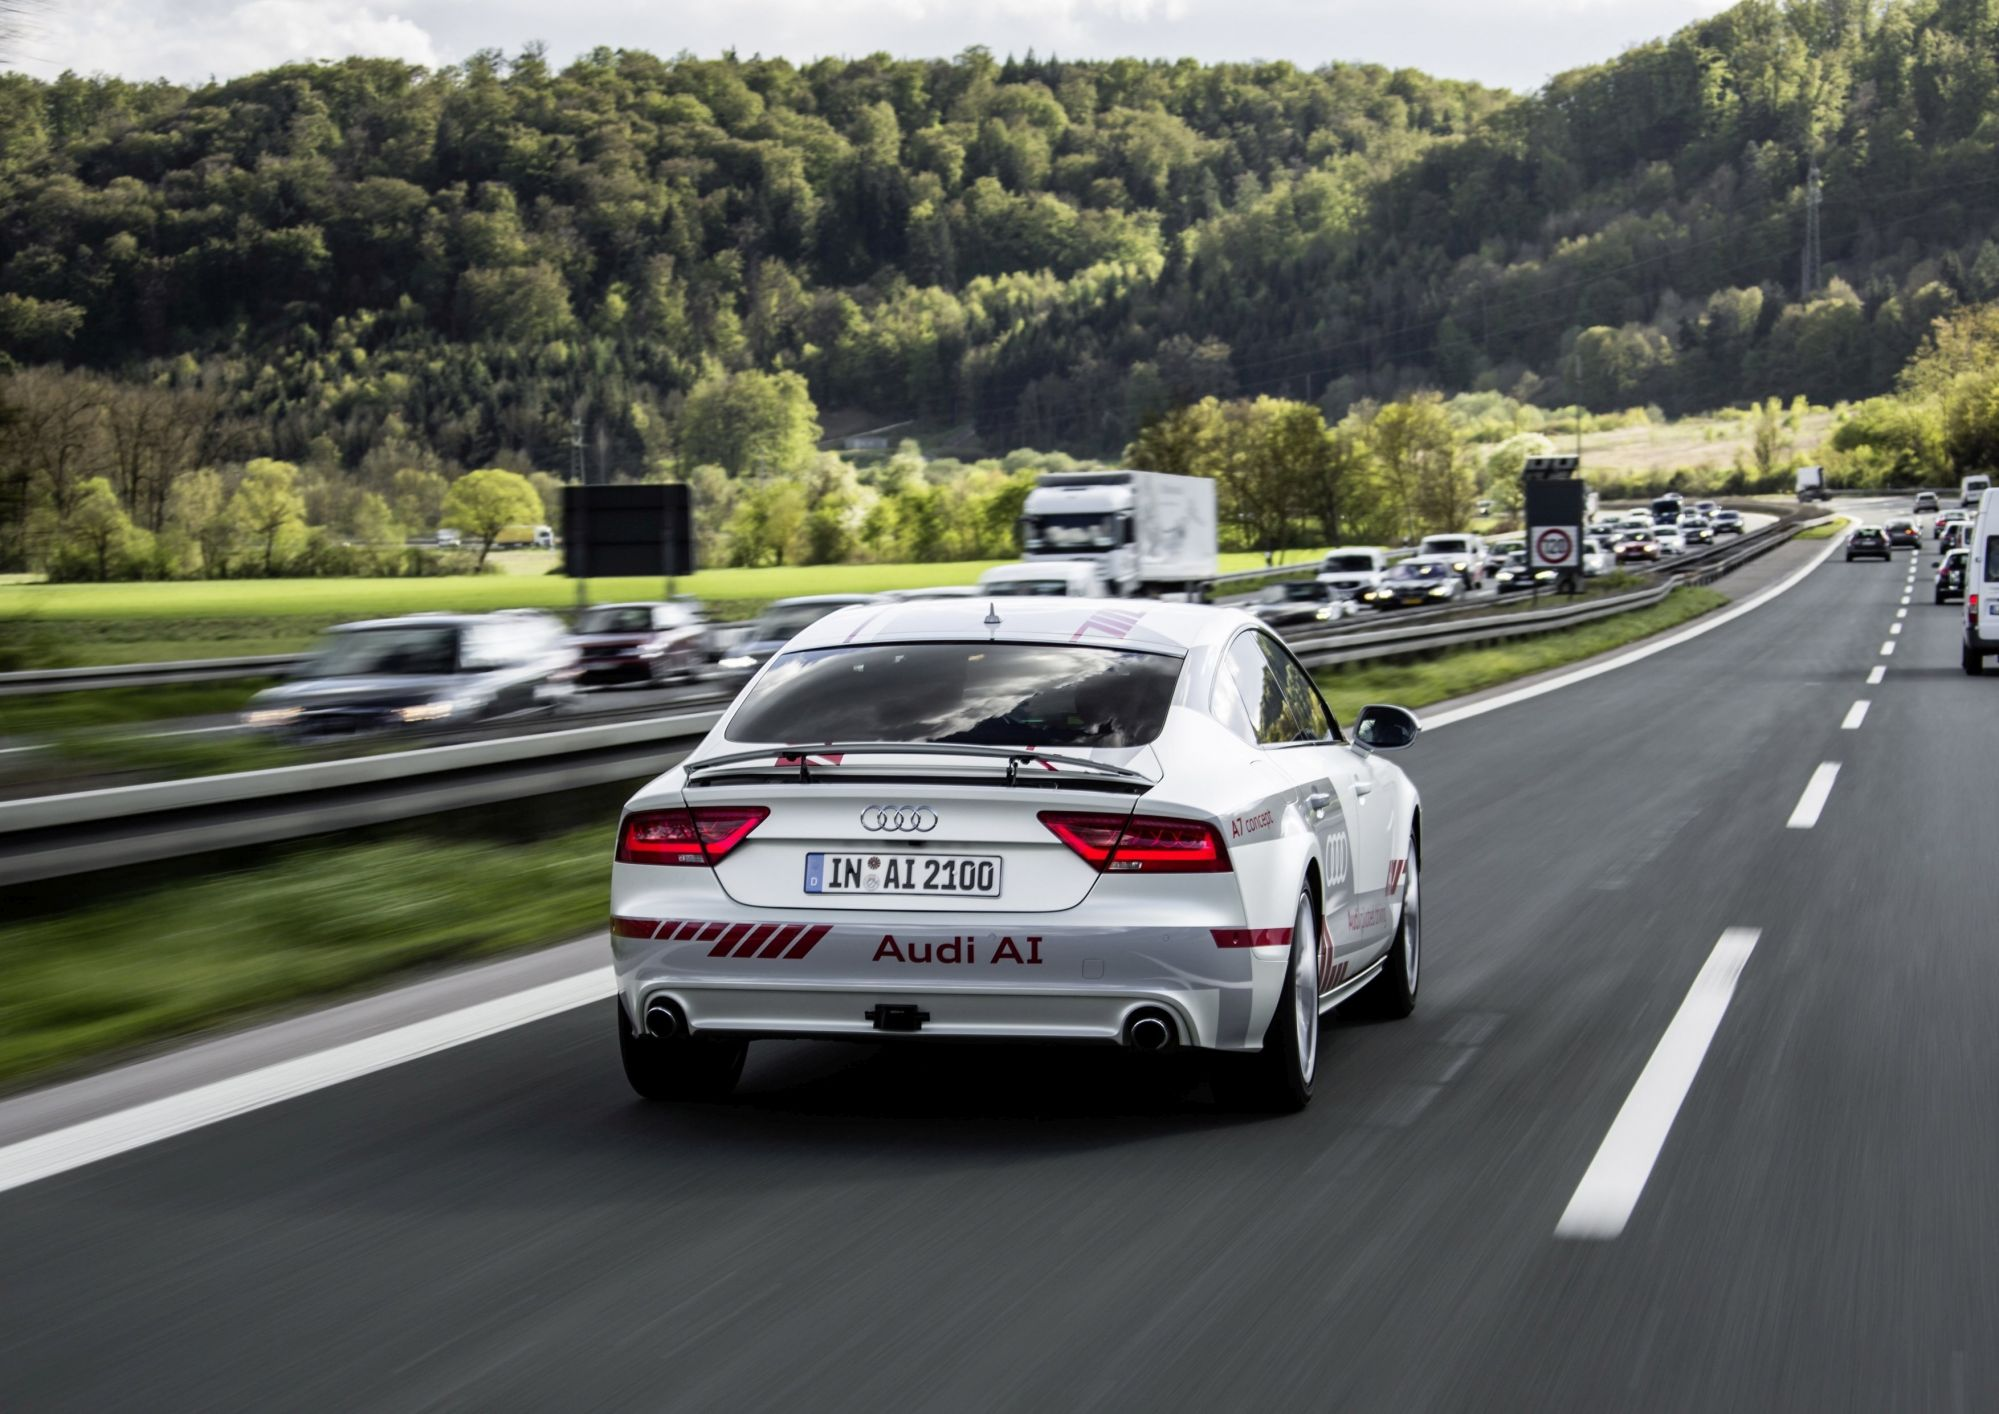 Audi Establishes A Centre Of Research For Self-Driving Cars